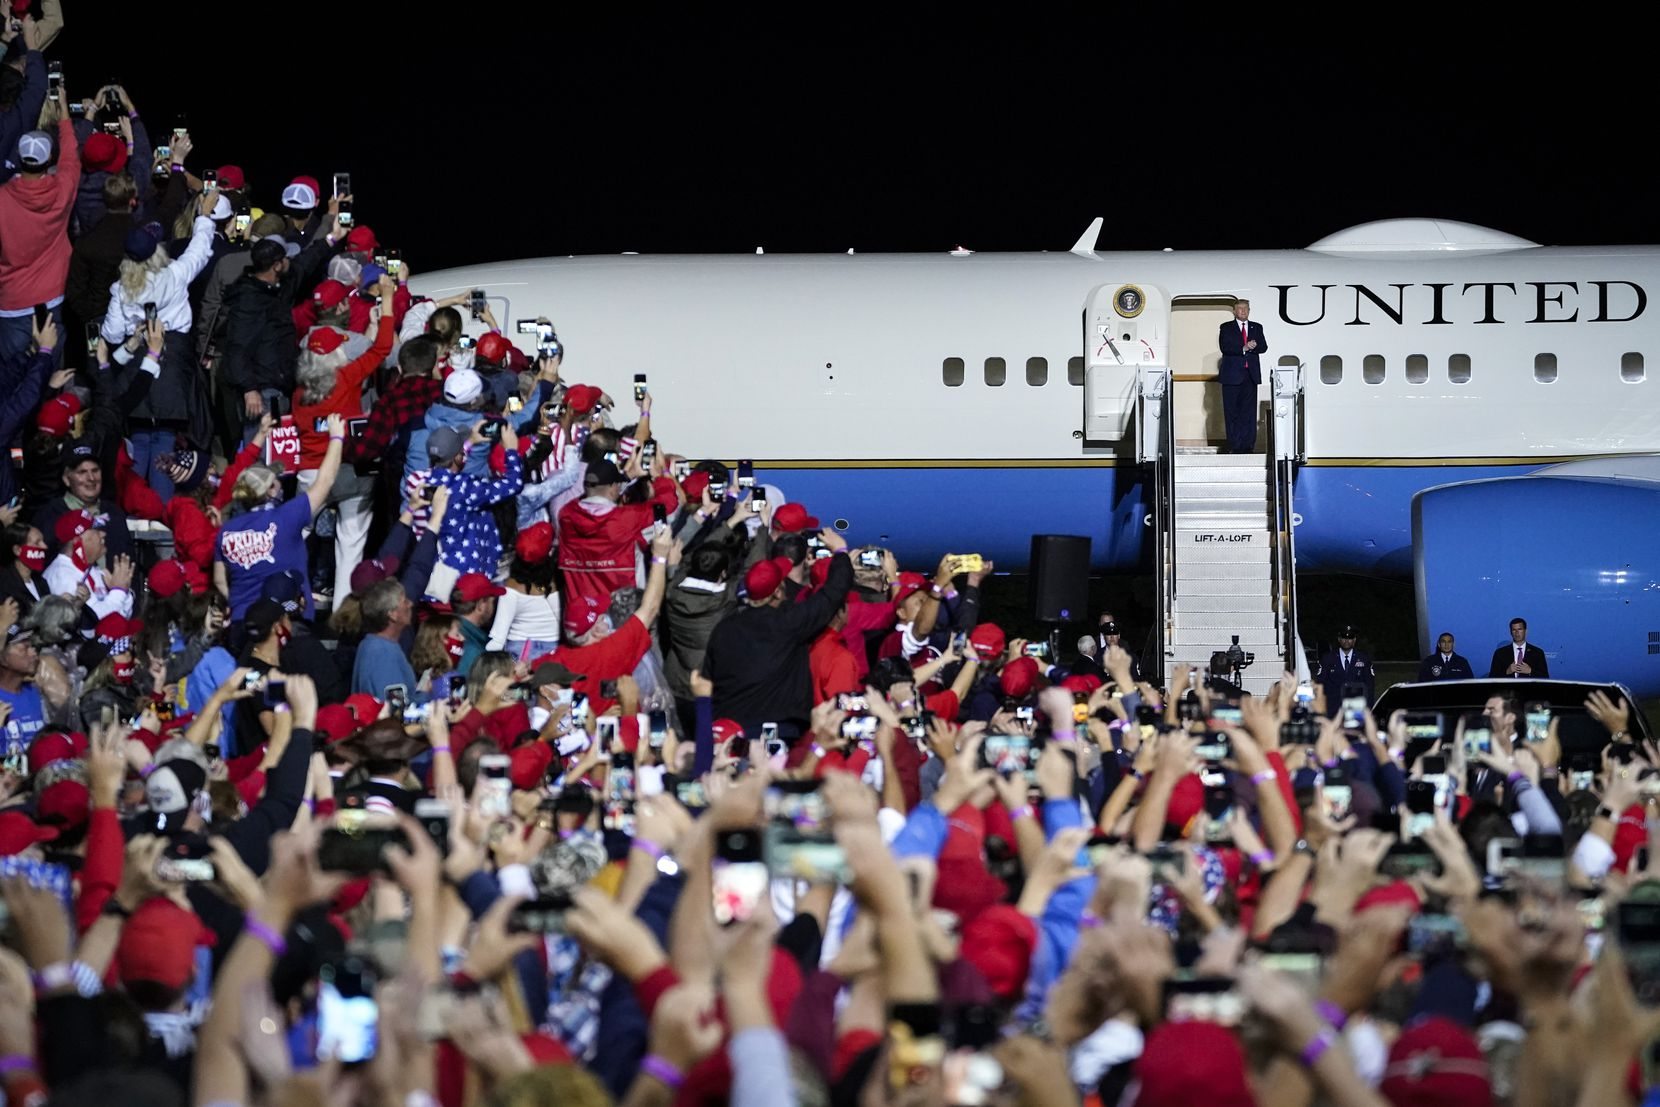 President Donald Trump arrives for a campaign rally at Newport News/Williamsburg International Airport on Sept. 25, 2020 in Newport News, Va.